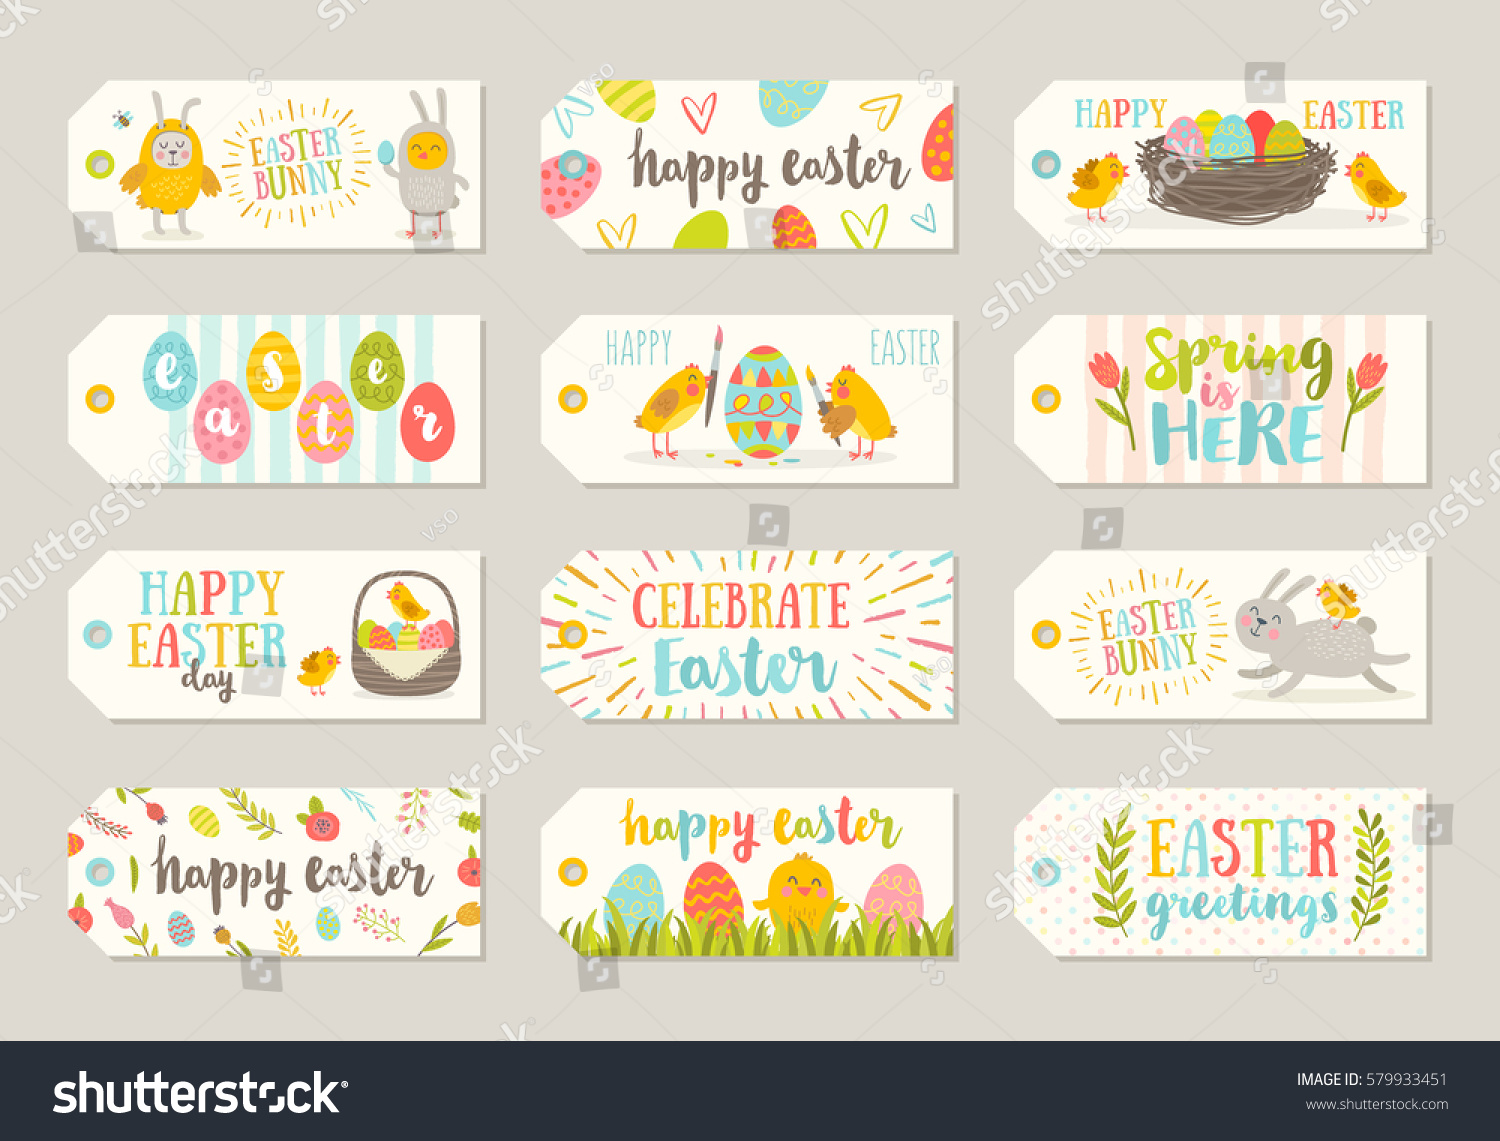 Set easter gift tags labels cute stock vector 579933451 shutterstock set of easter gift tags and labels with cute cartoon characters and type design easter negle Image collections